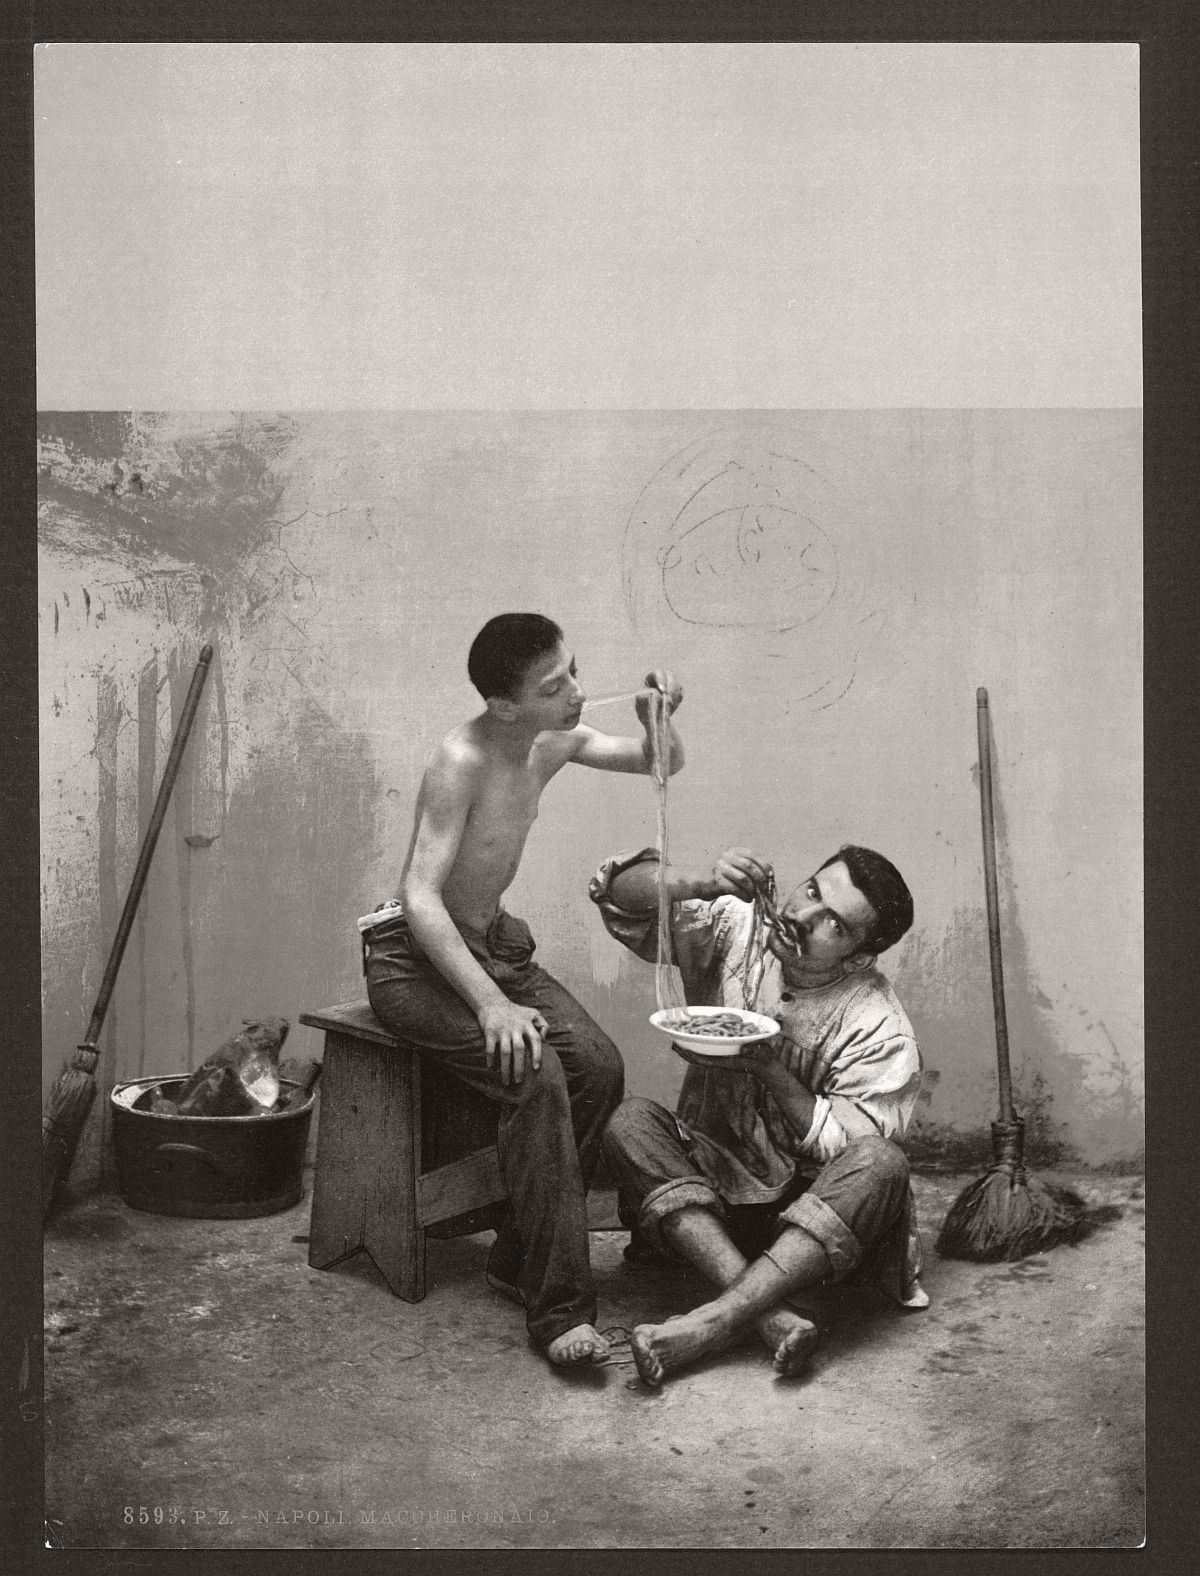 historic-bw-photos-of-naples-italy-in-19th-century-08